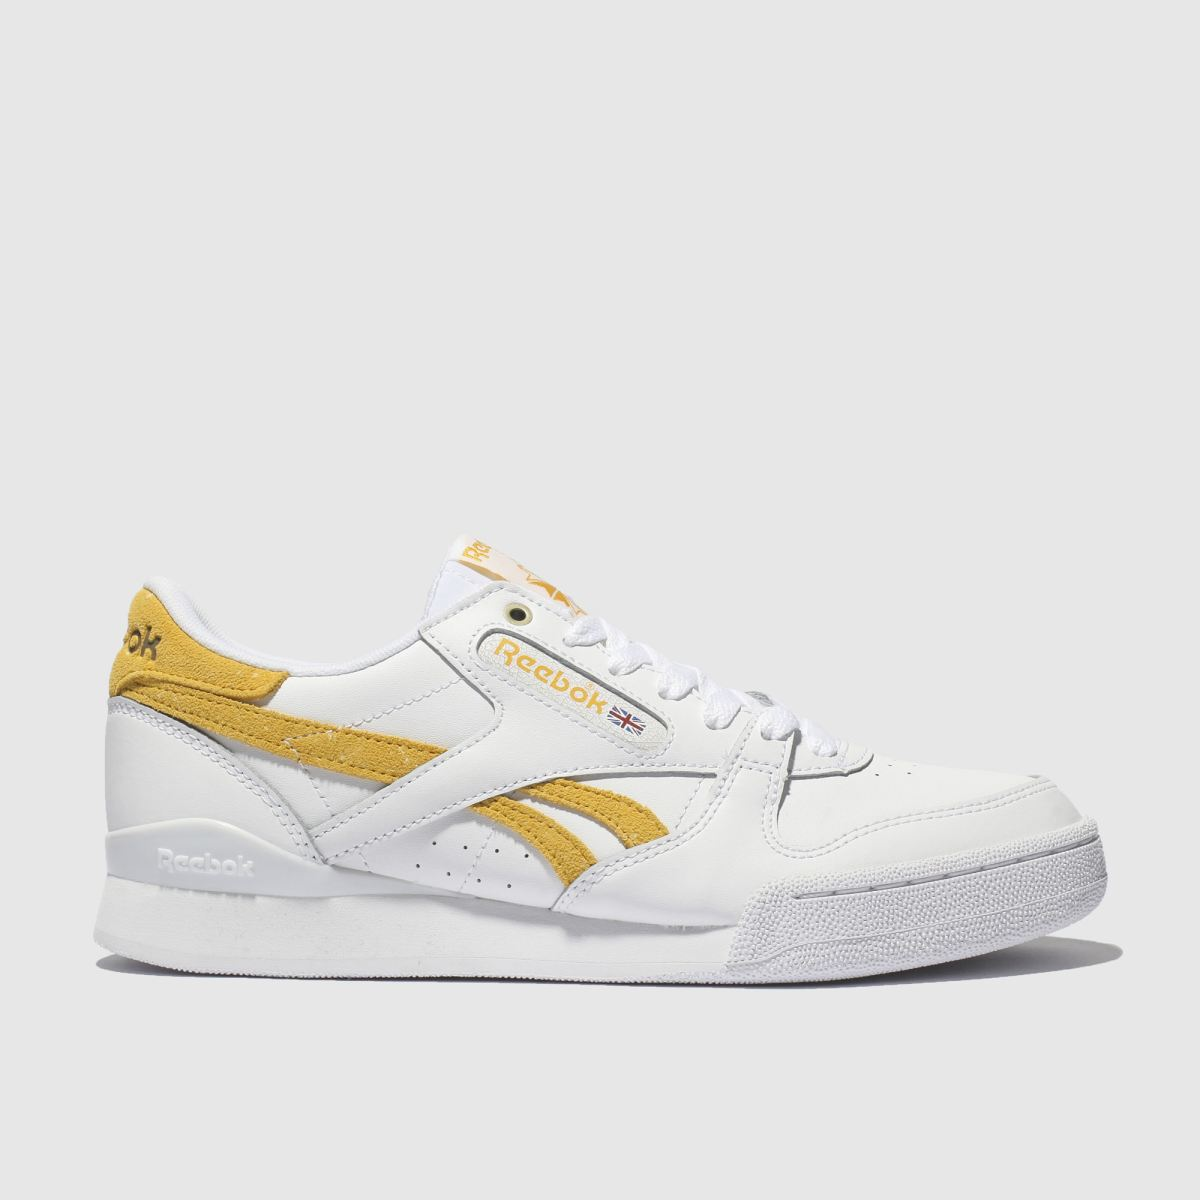 Reebok White & Yellow Phase 1 Pro Trainers